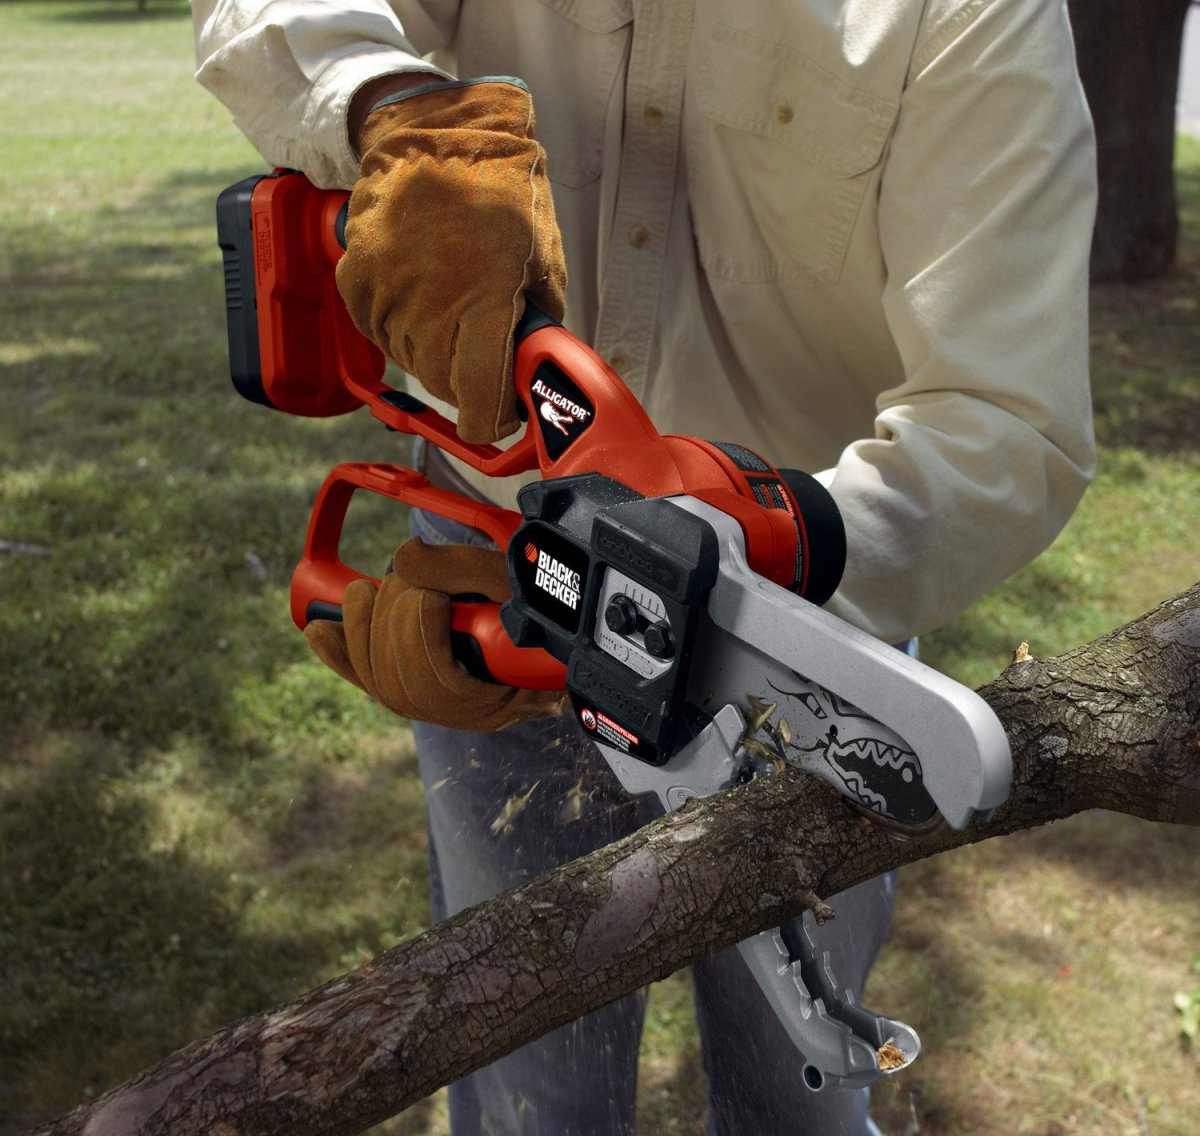 What Chainsaw Chain Do I Need What Size File Do I Need For